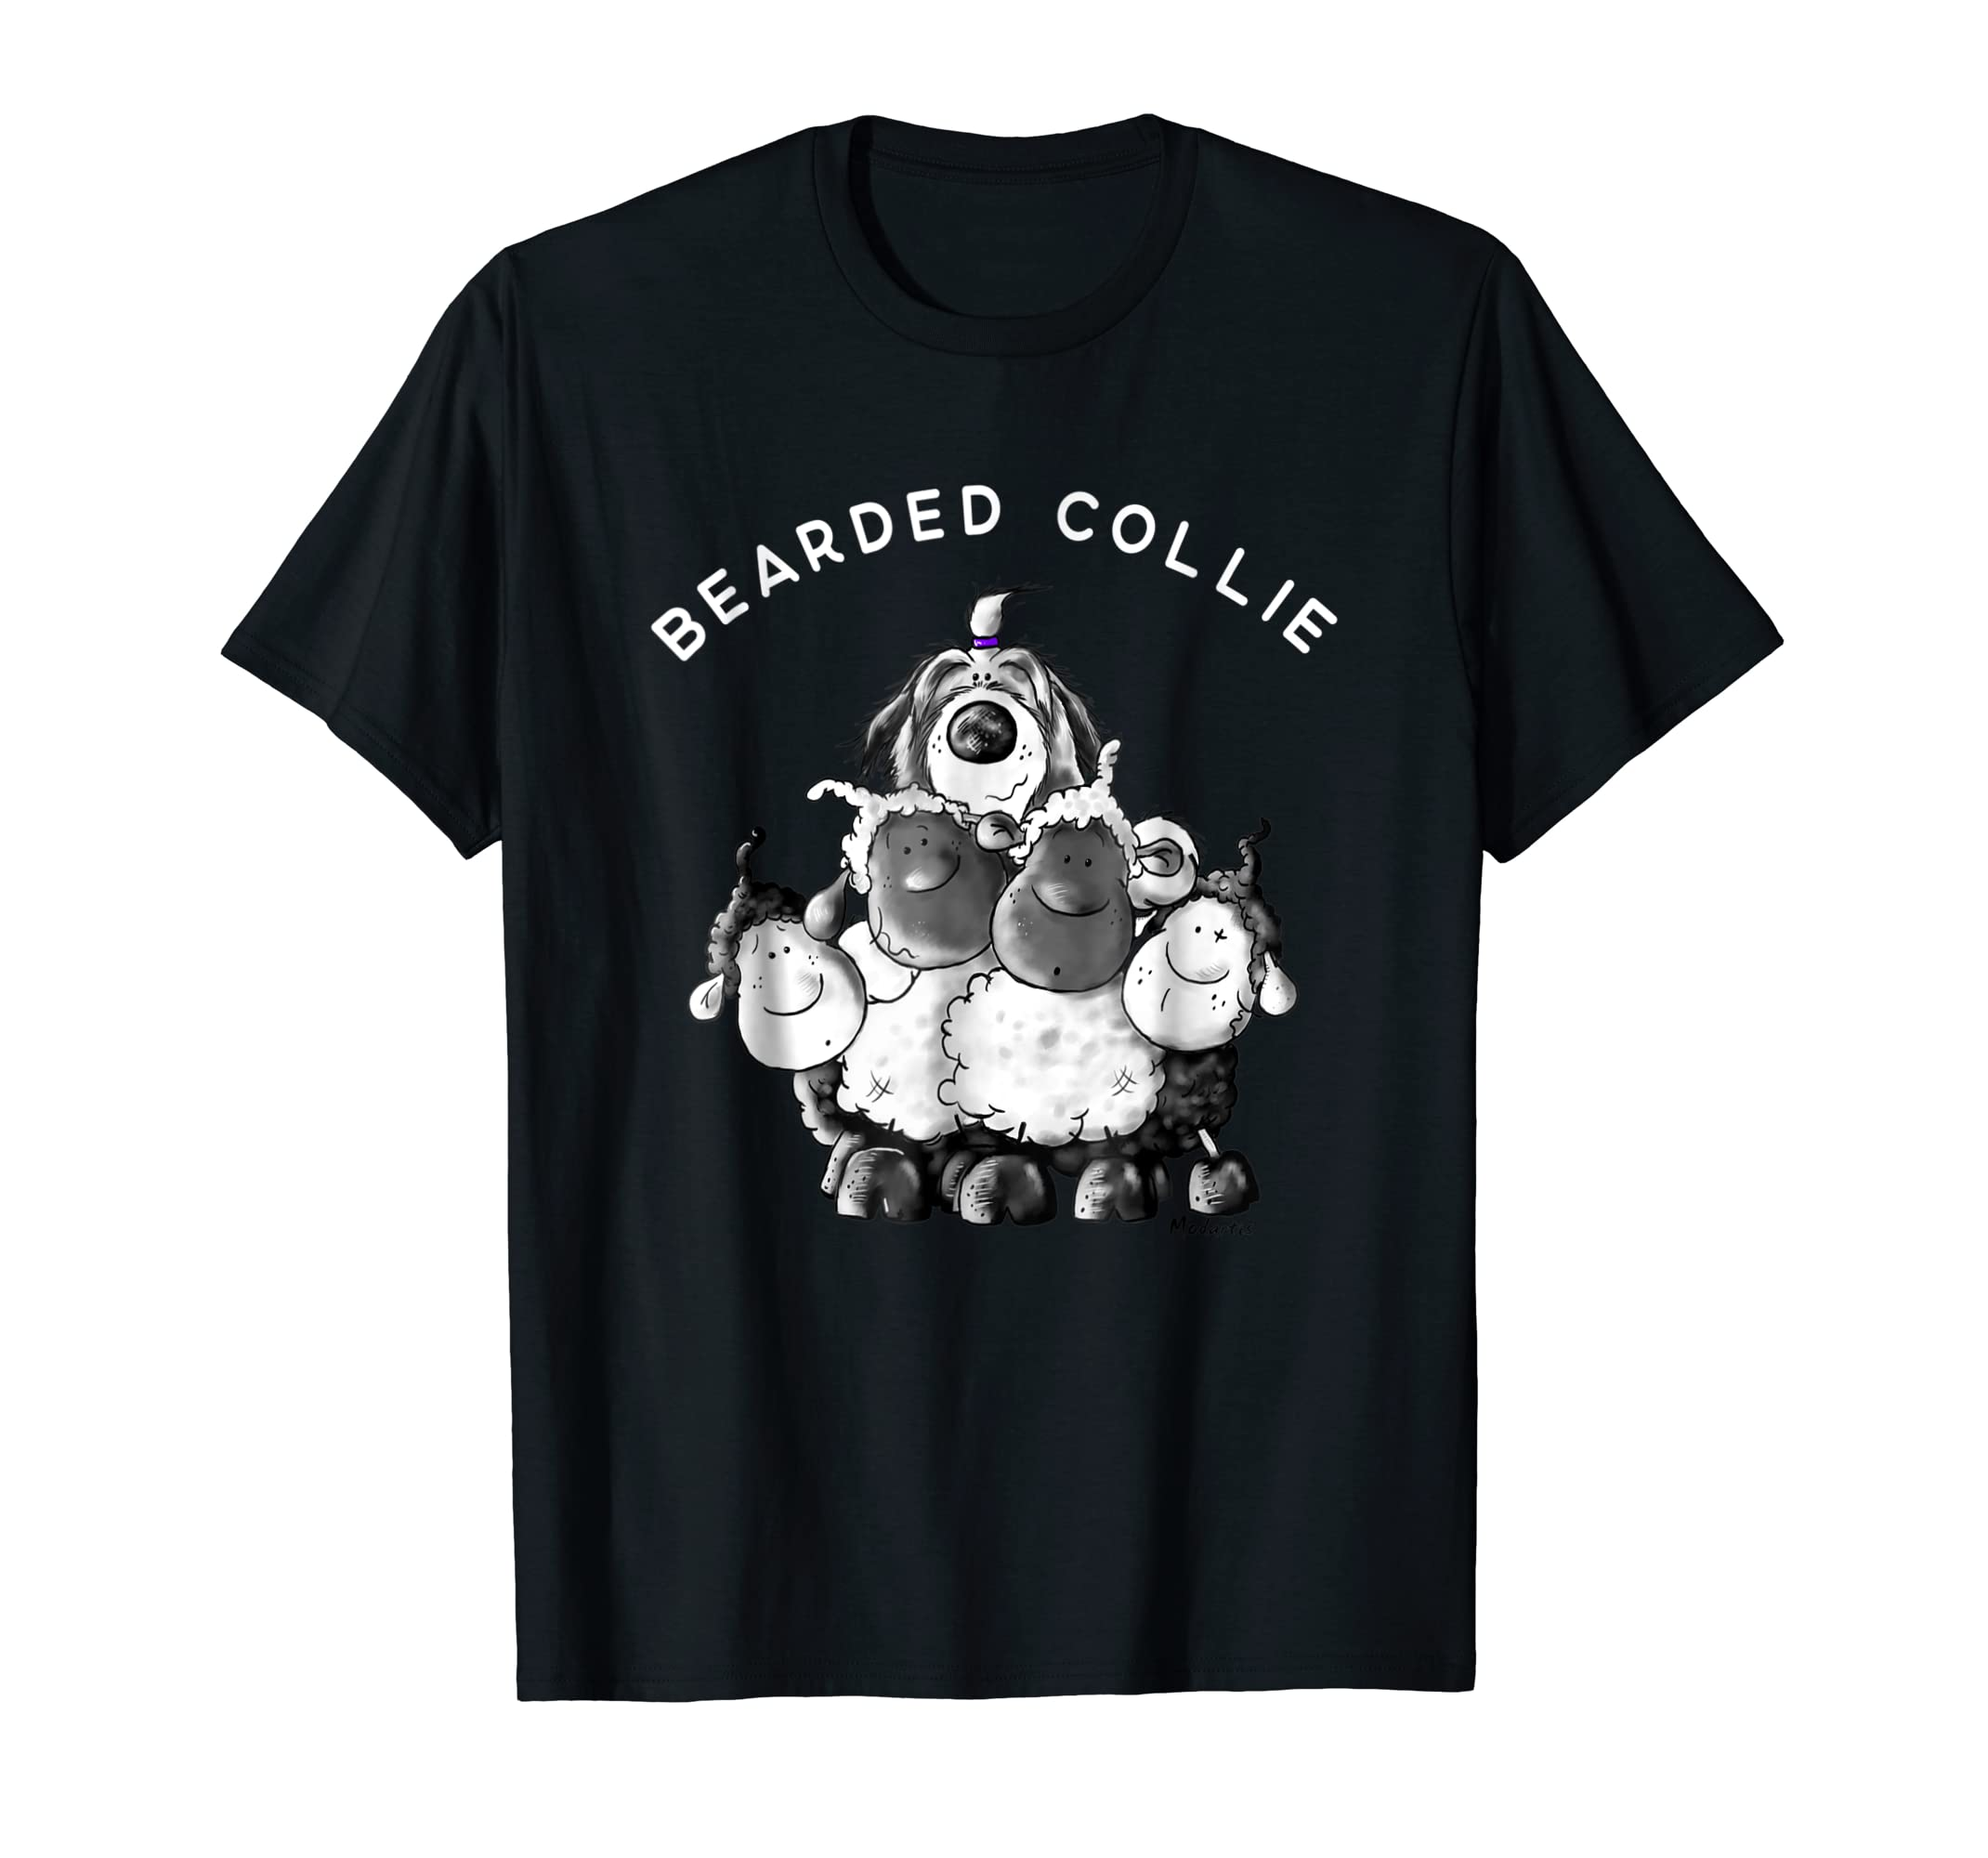 Bearded Collie With Sheep T-Shirt I Beardie Dog Breed Gift-Men's T-Shirt-Black